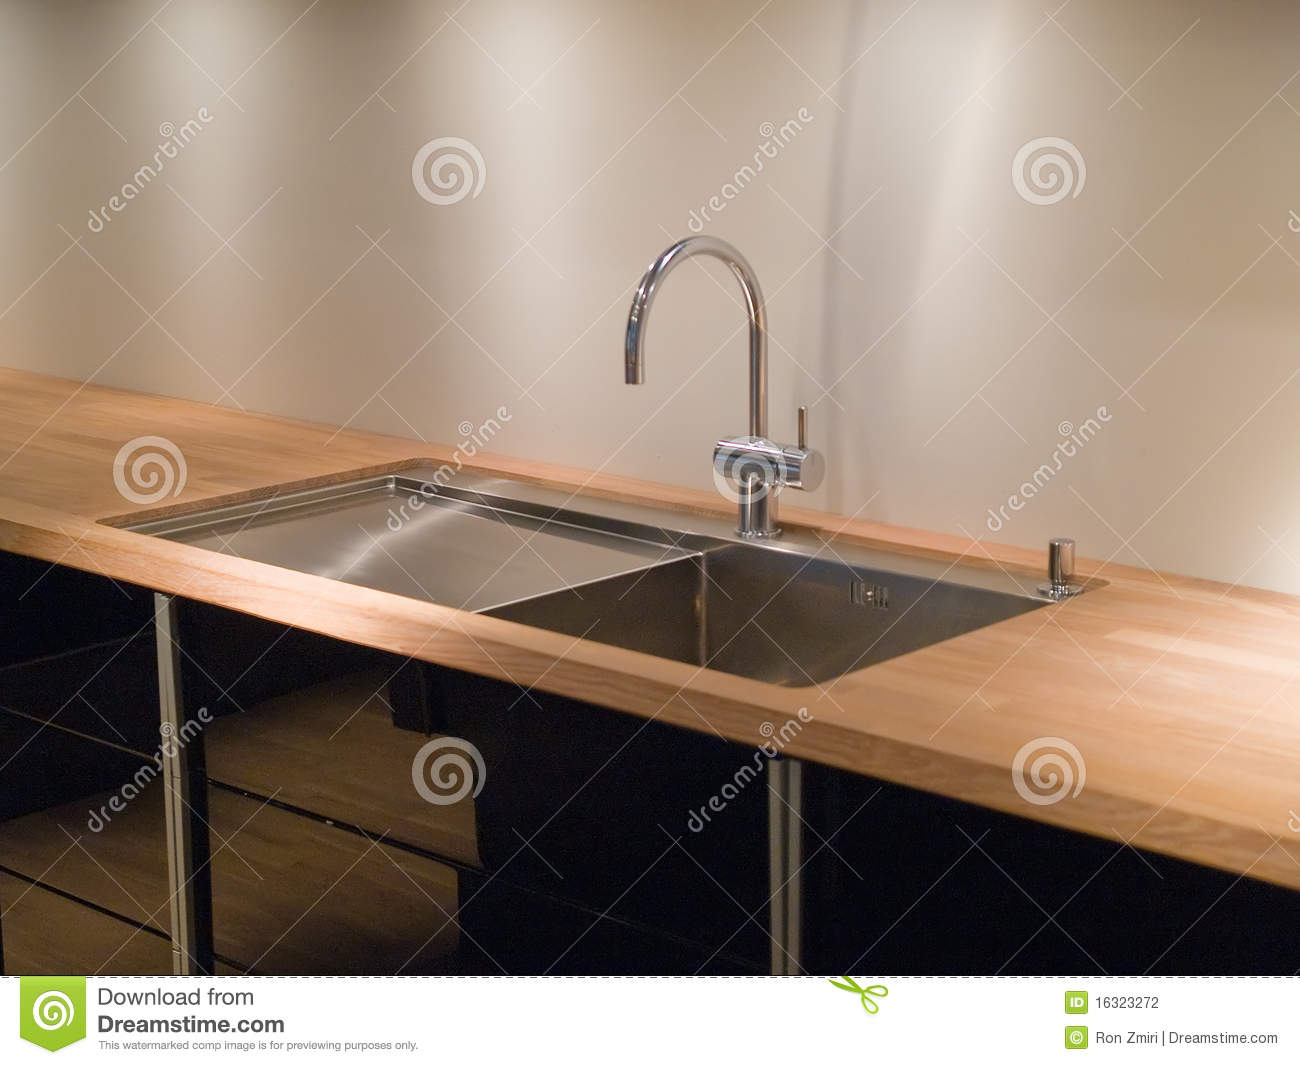 ▻ kitchen sink  dis identify kitchen sinks and faucets modern  - royalty free stock photos modern kitchen sink faucet image kitchen sinksand faucets details of modern